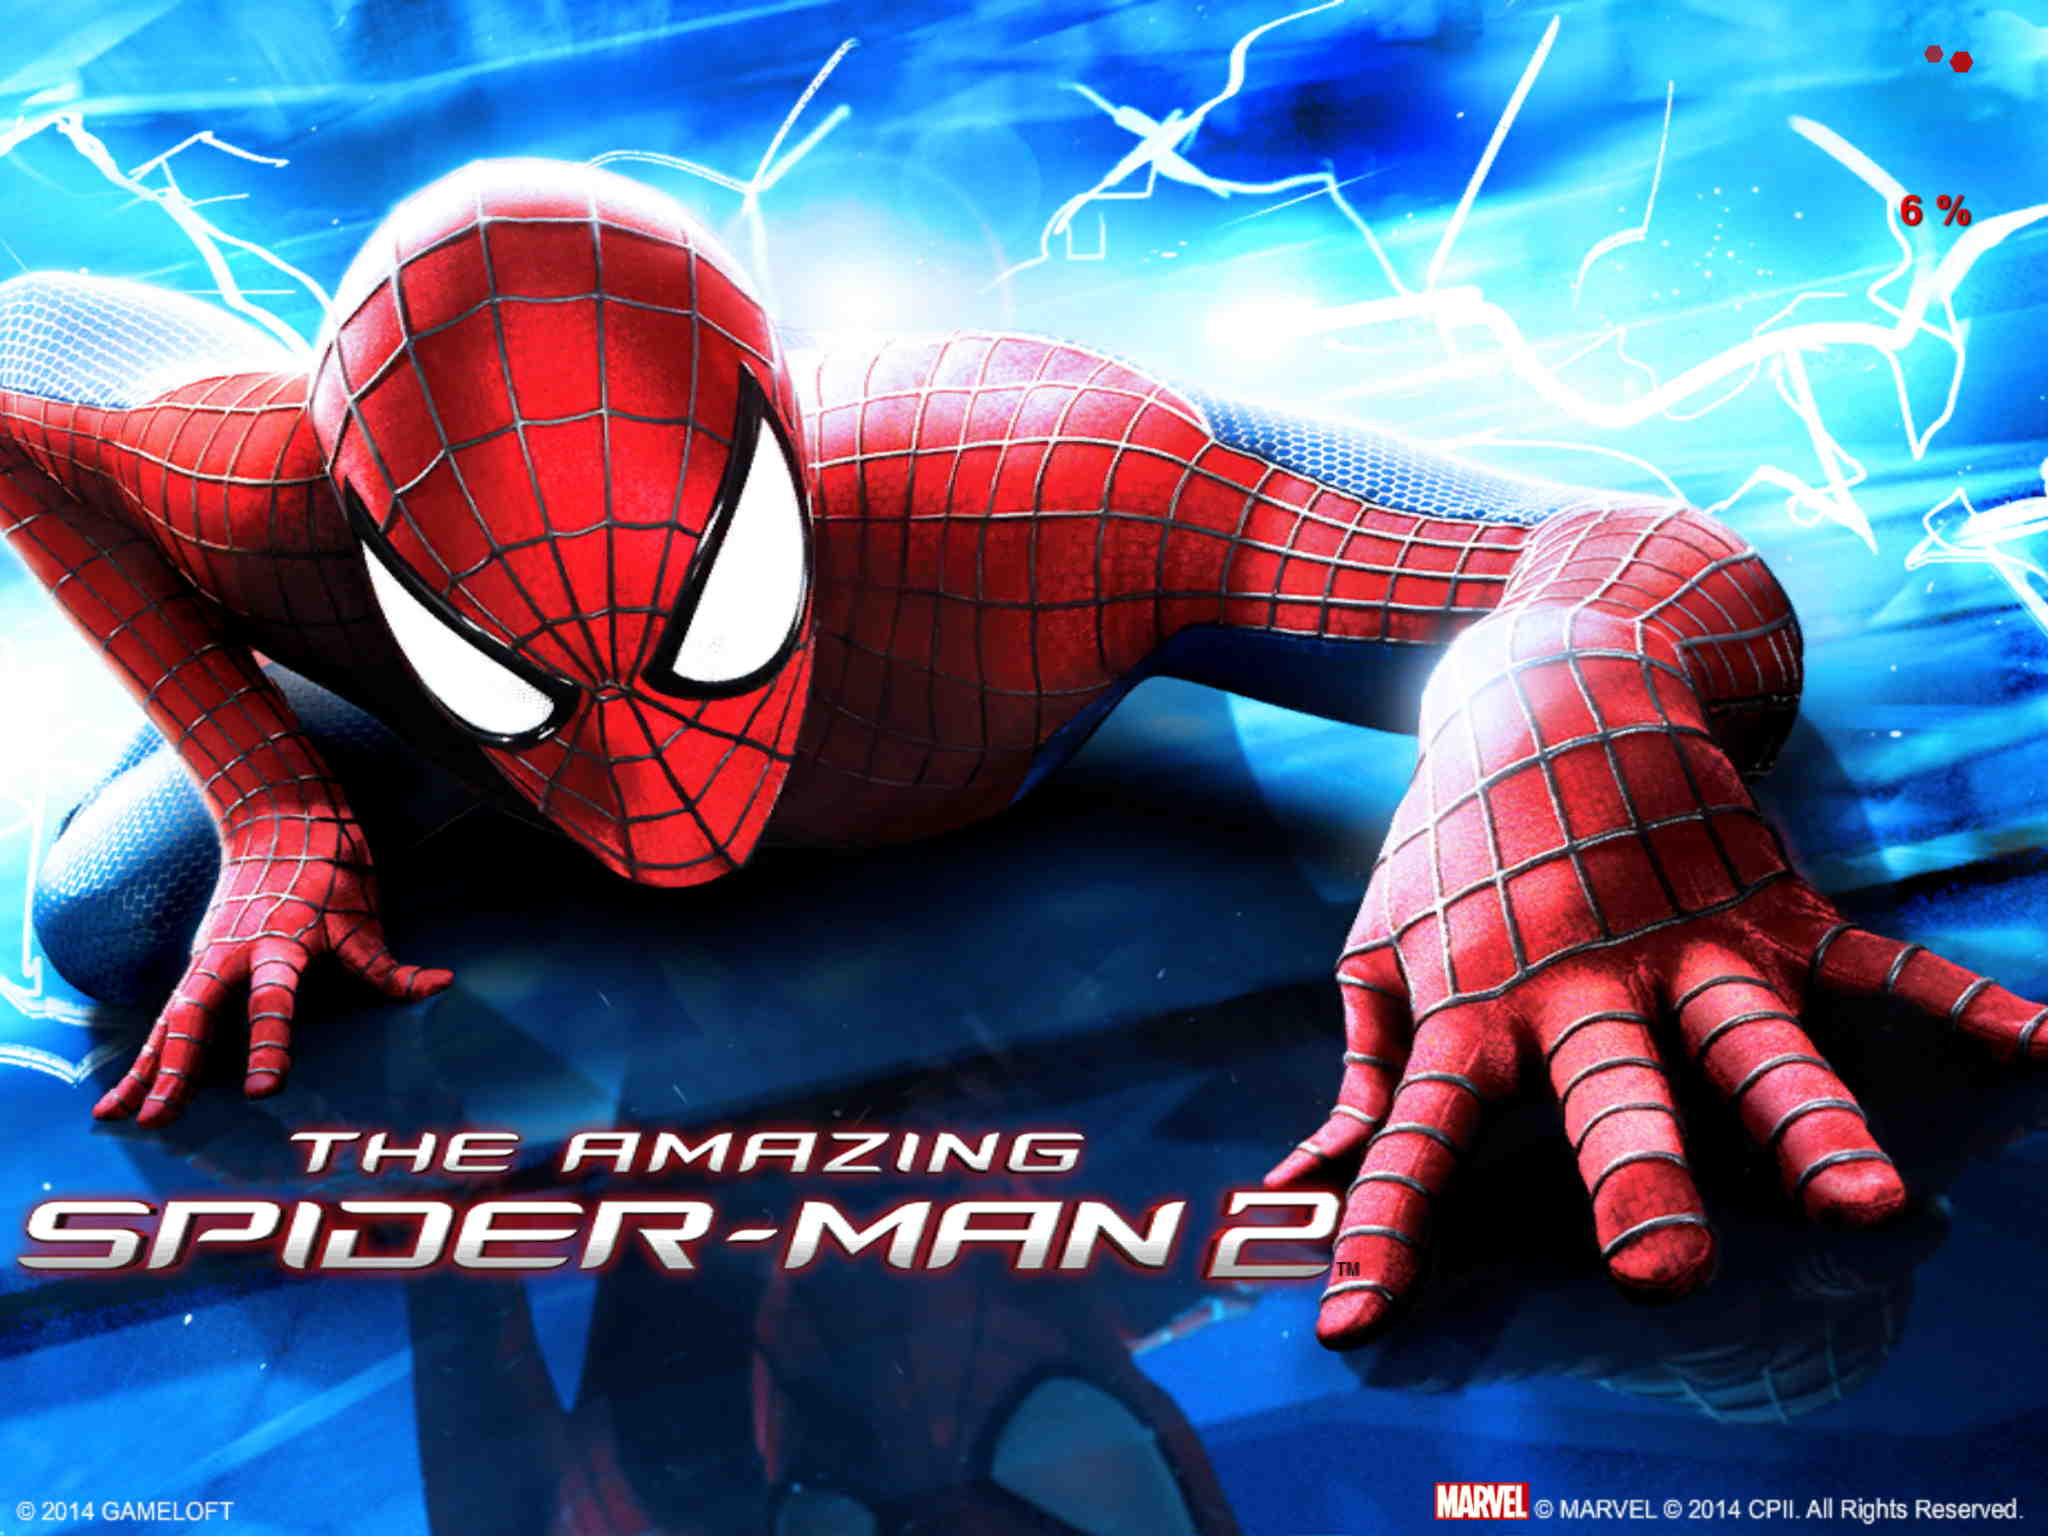 AmazingSpiderman2_01